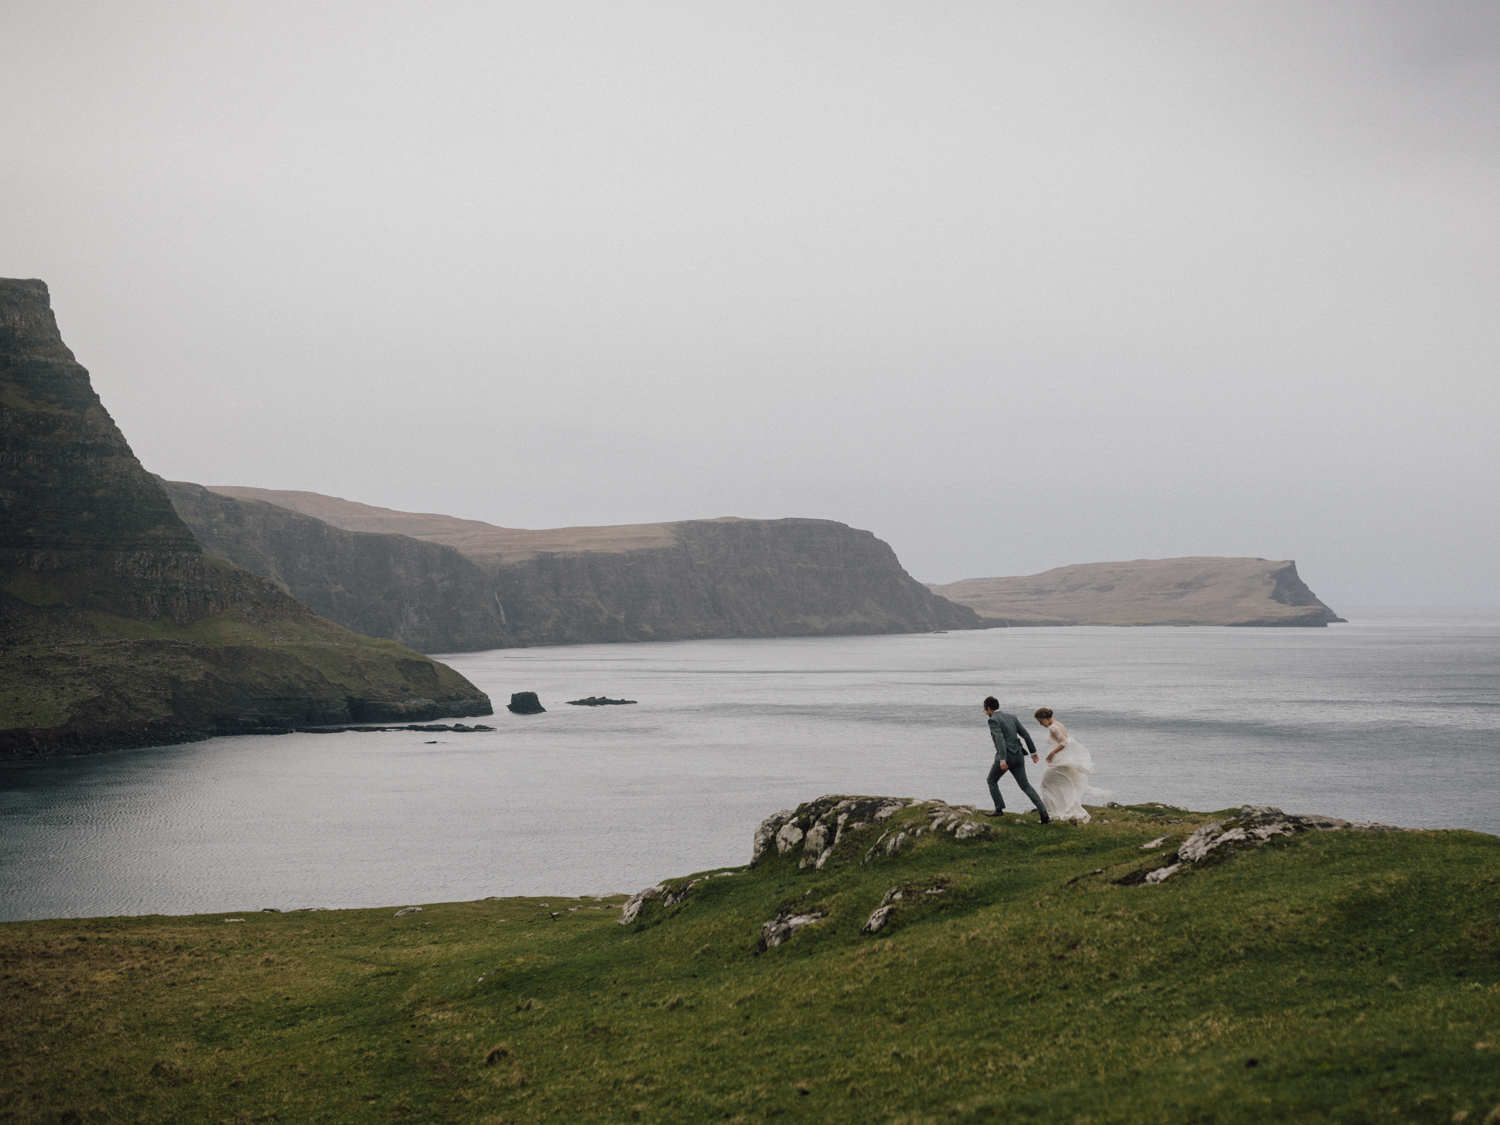 capyture-wedding-photographer-destination-nature-intimate-wedding-isle-of-skye-scotland-849